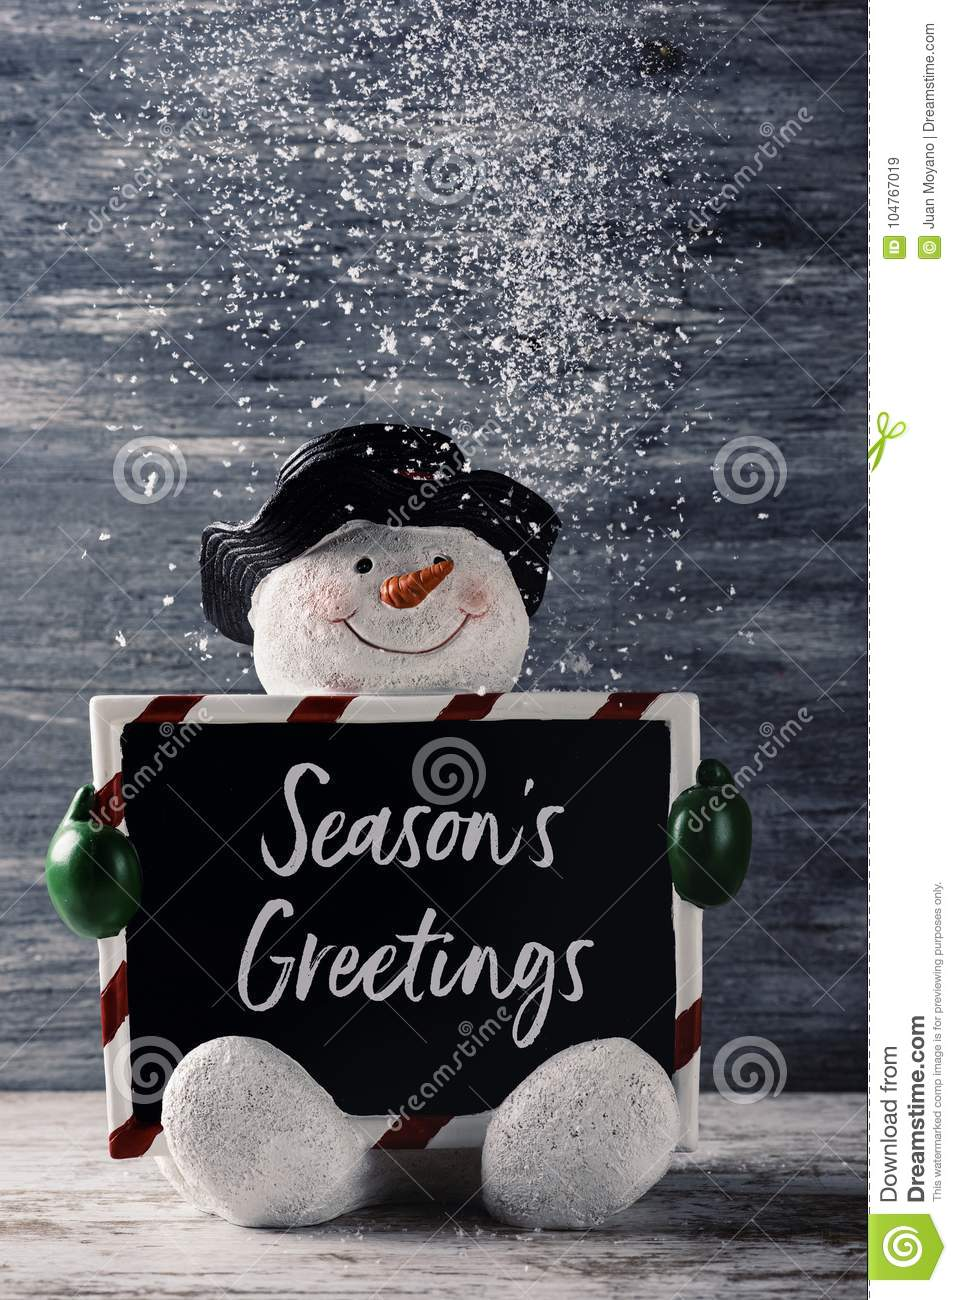 Snowman and text seasons greetings stock image image of greetings snowman and text seasons greetings m4hsunfo